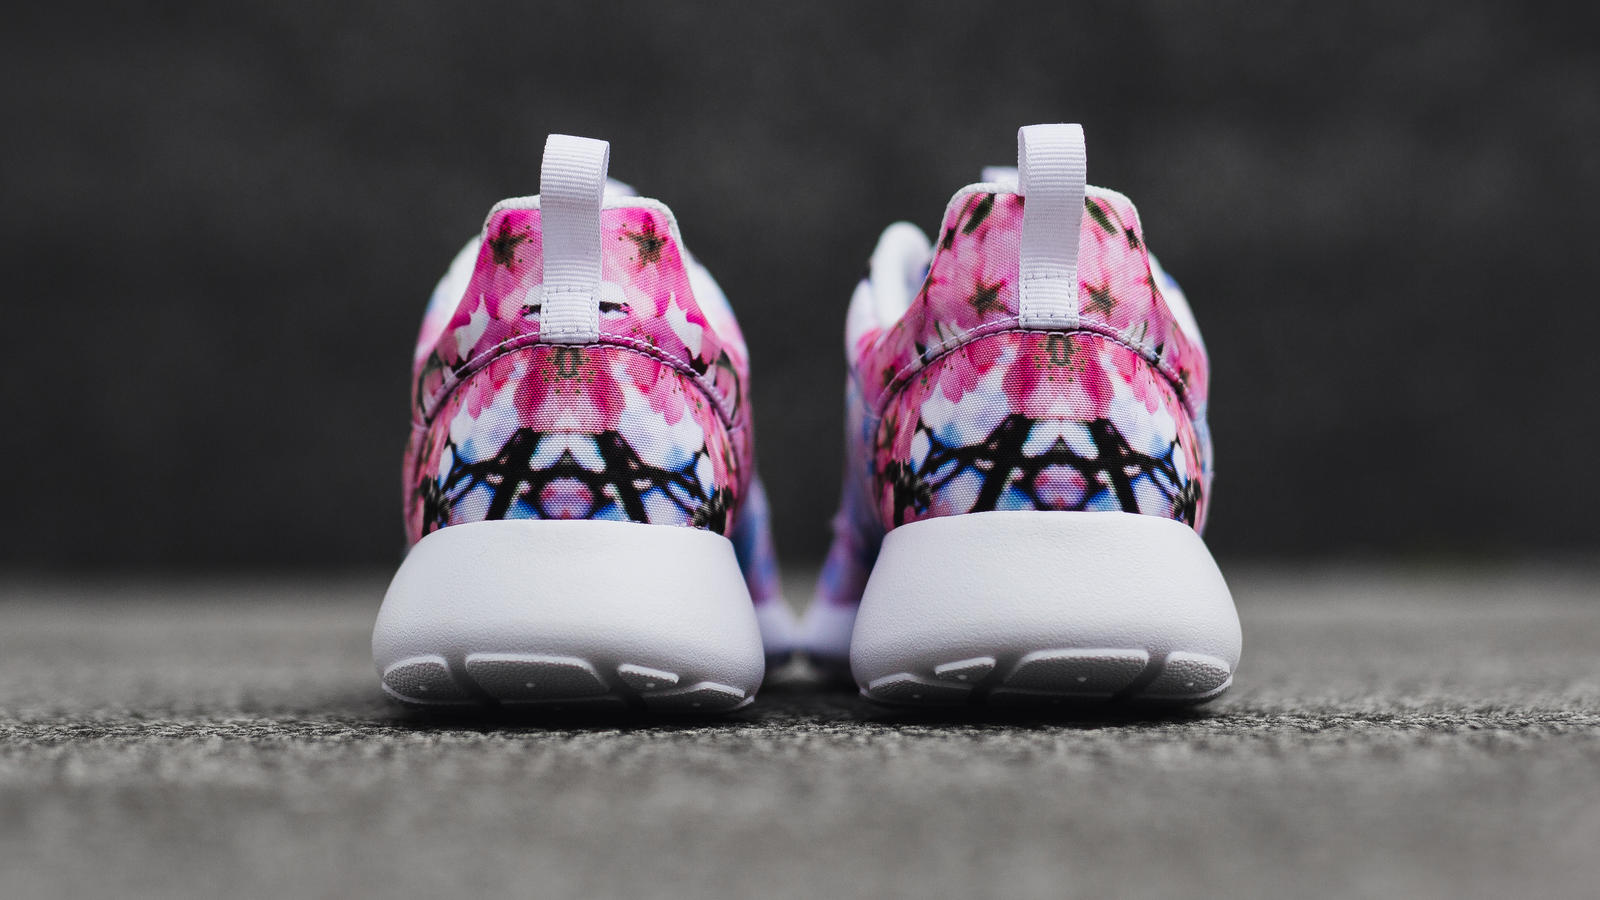 Nike roshe one cherry blossom 2 hd 1600